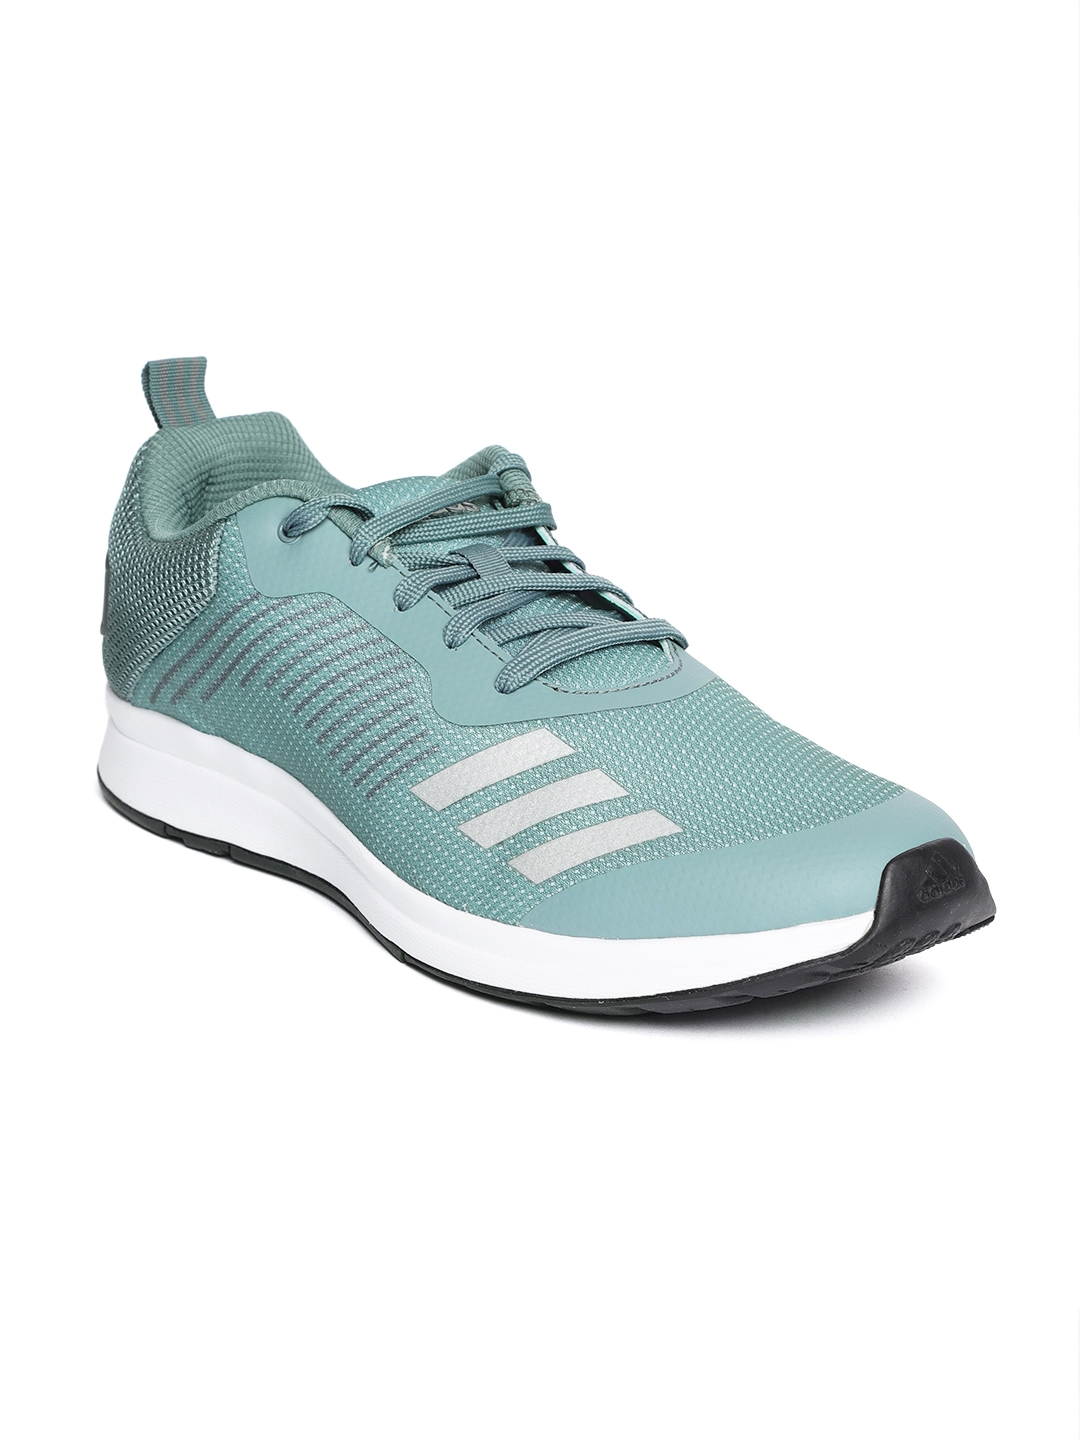 fecd44d7bf Buy ADIDAS Men Green Puaro Running Shoes - Sports Shoes for Men ...